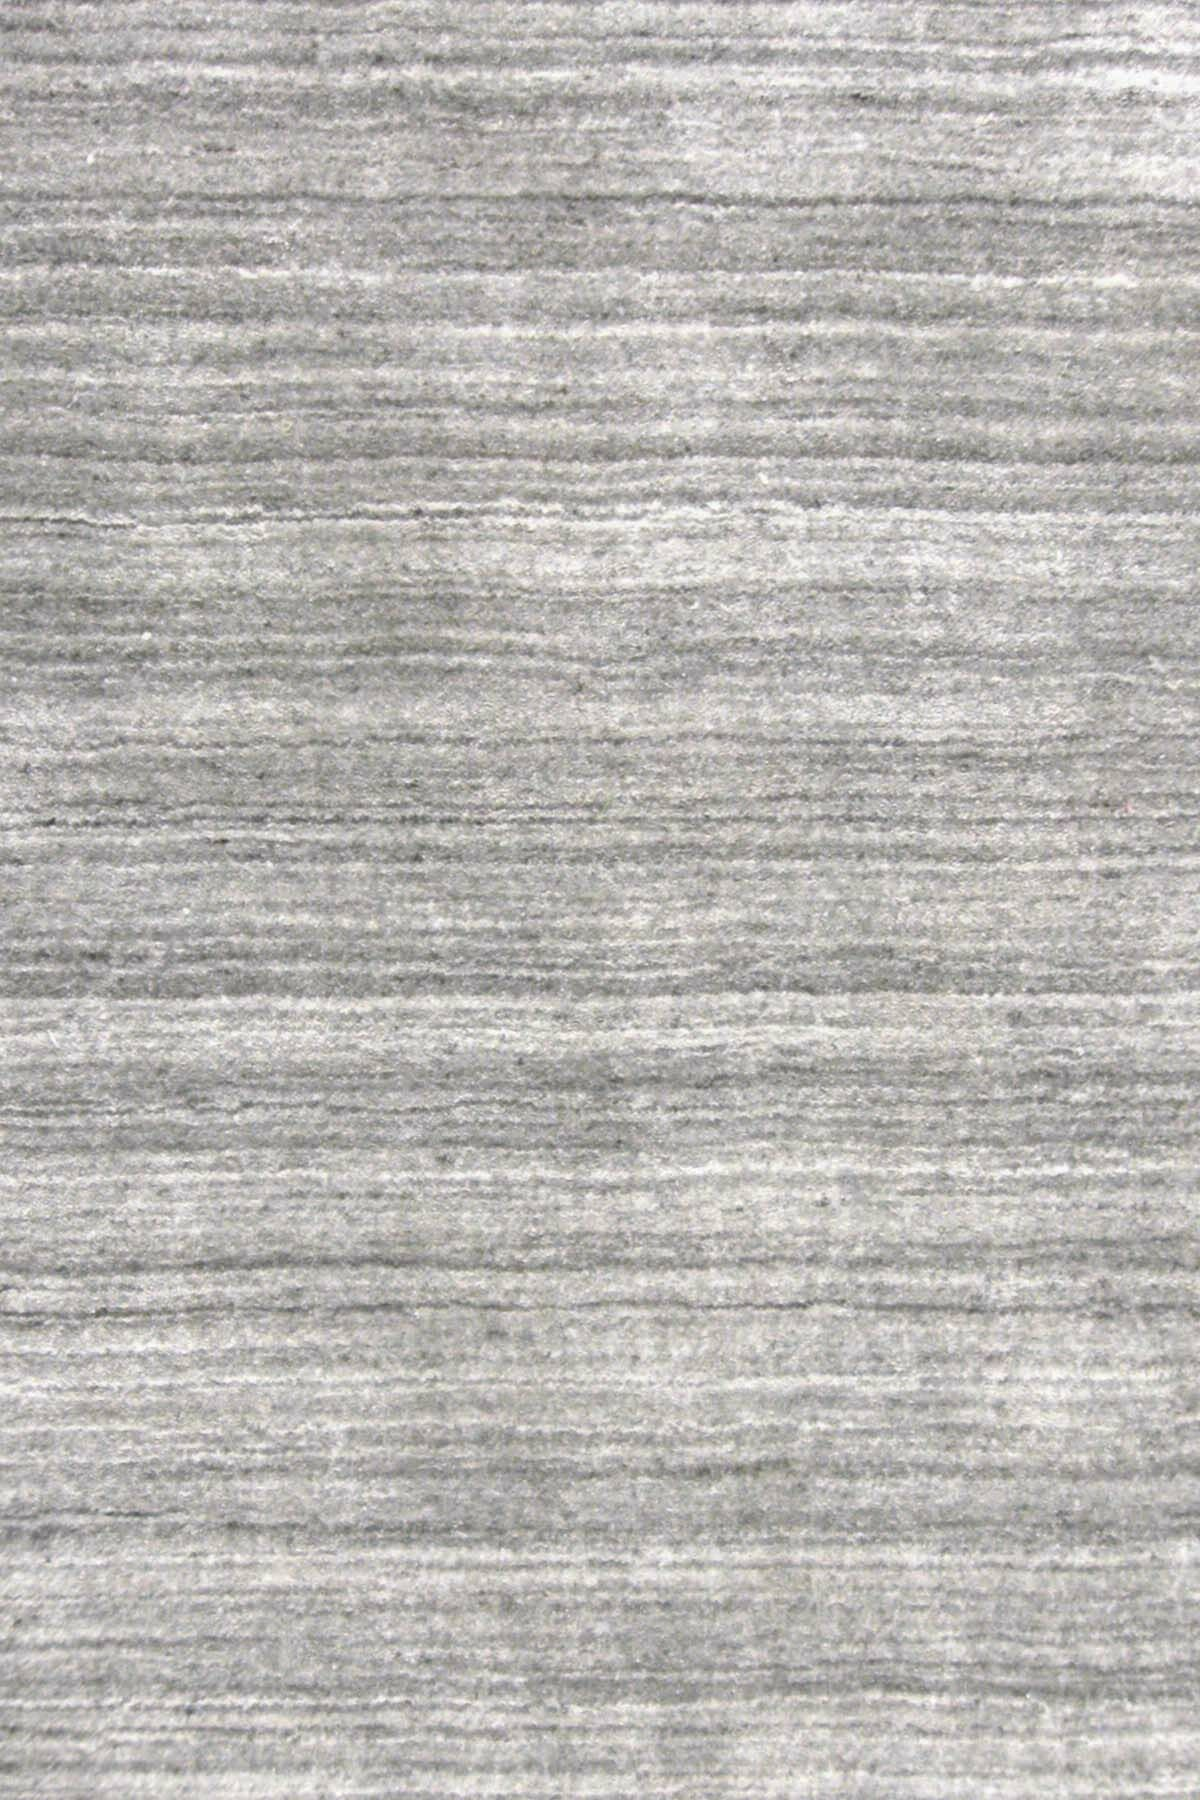 Icelandia Knotted Gray Area Rug Rug Size: Rectangle 10' x 14'